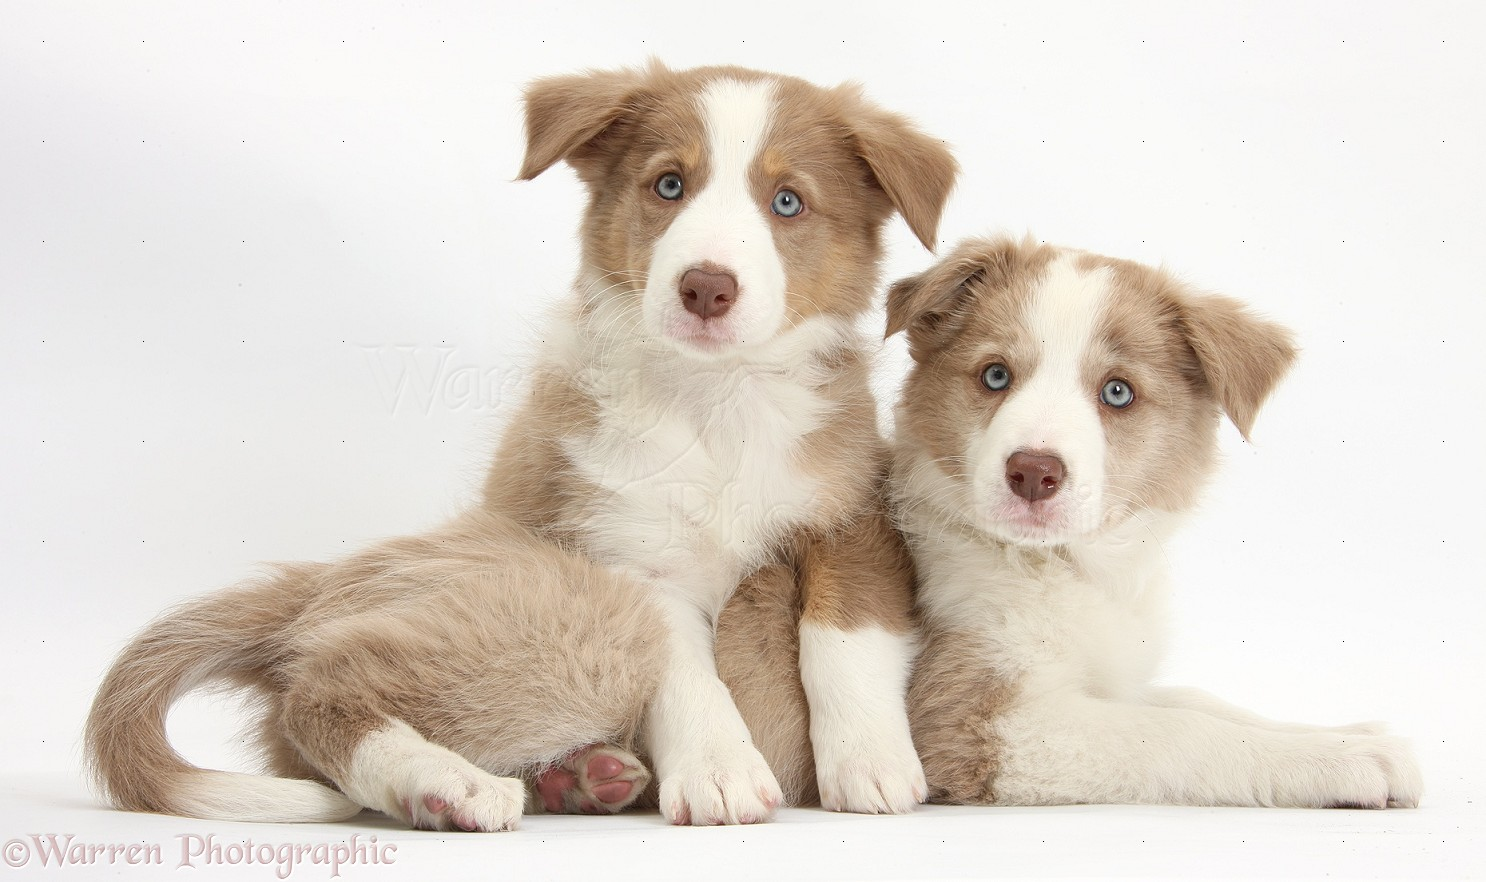 38572 Utonagan Watching Fireworks additionally 19819 Border Collie Pup 5 Weeks Old Sleeping besides 01524 Cute Border Collie Puppy as well 14167 Long Haired Weimaraner Dog Trotting Across furthermore Border Collie Lanyard Key Holder Badge Holder. on border collie